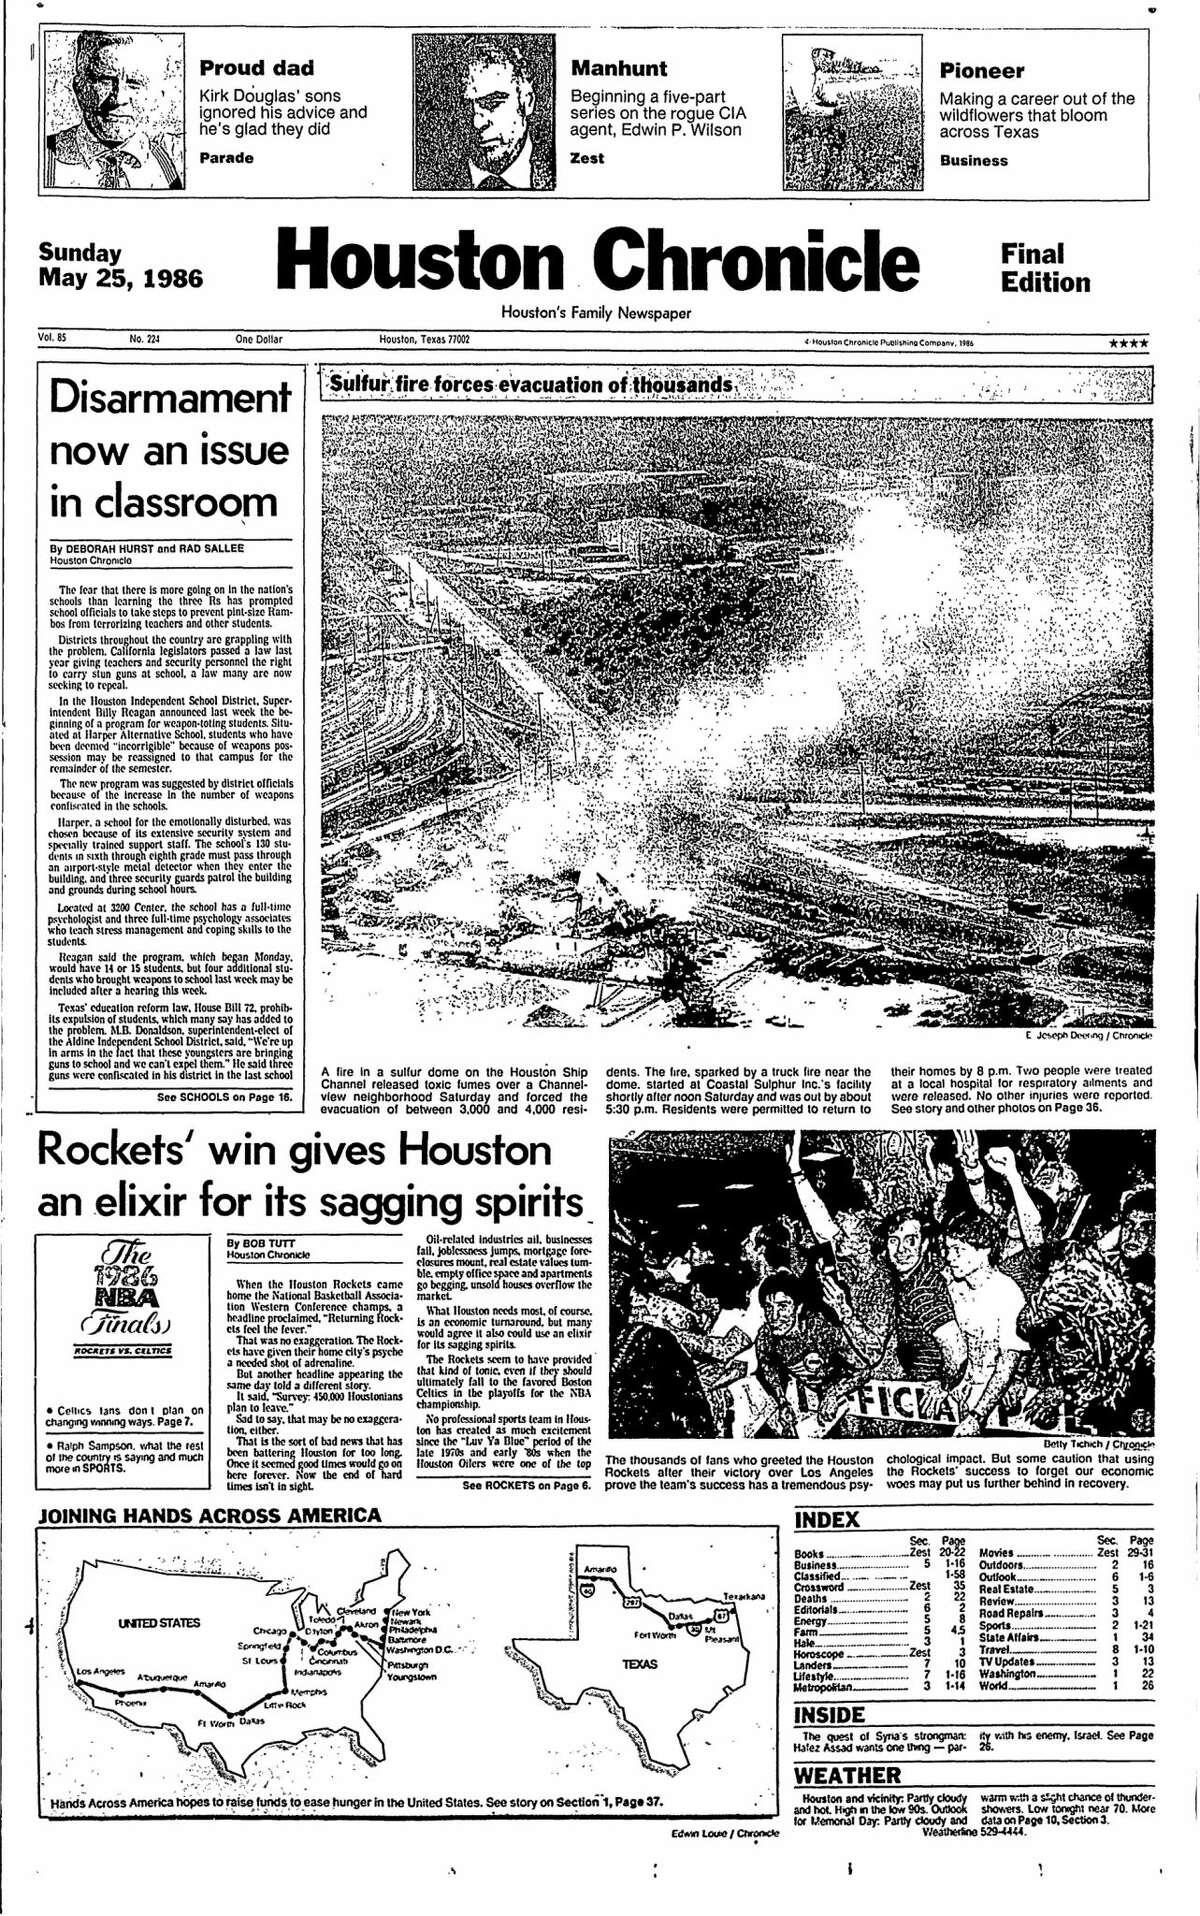 Houston Chronicle front page for May 25, 1986.